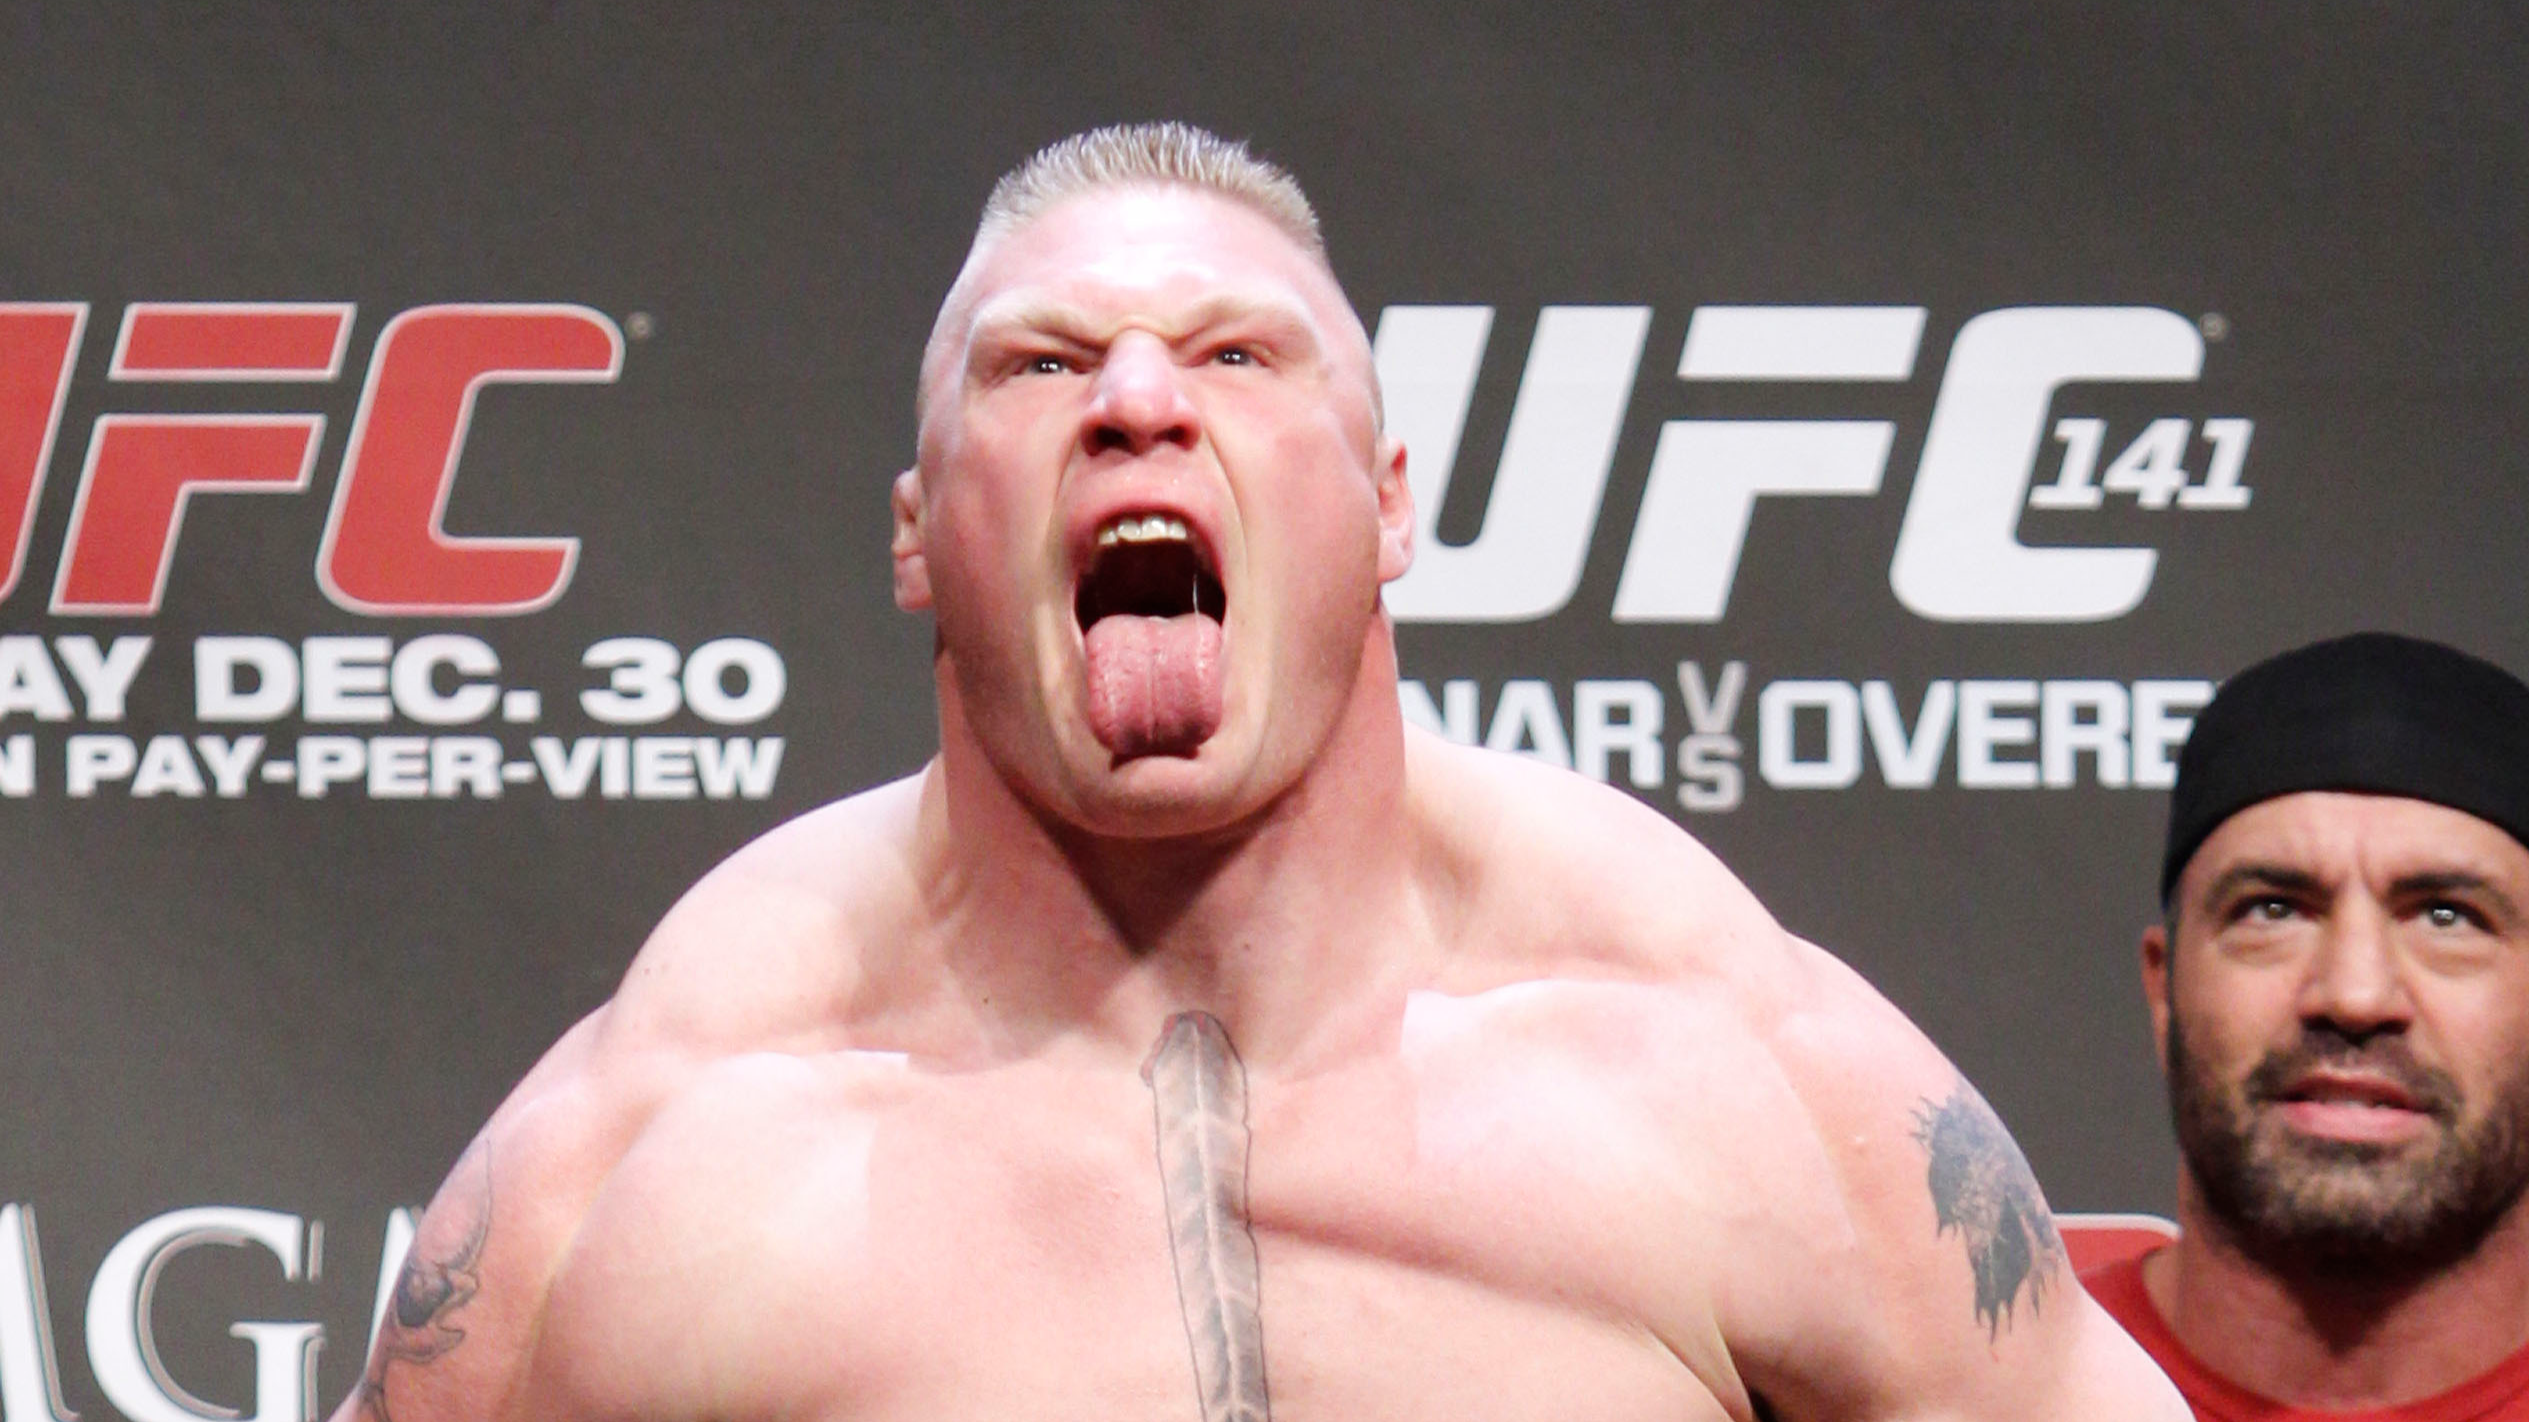 Brock Lesnar Heading Back To UFC To Fight Daniel Cormier